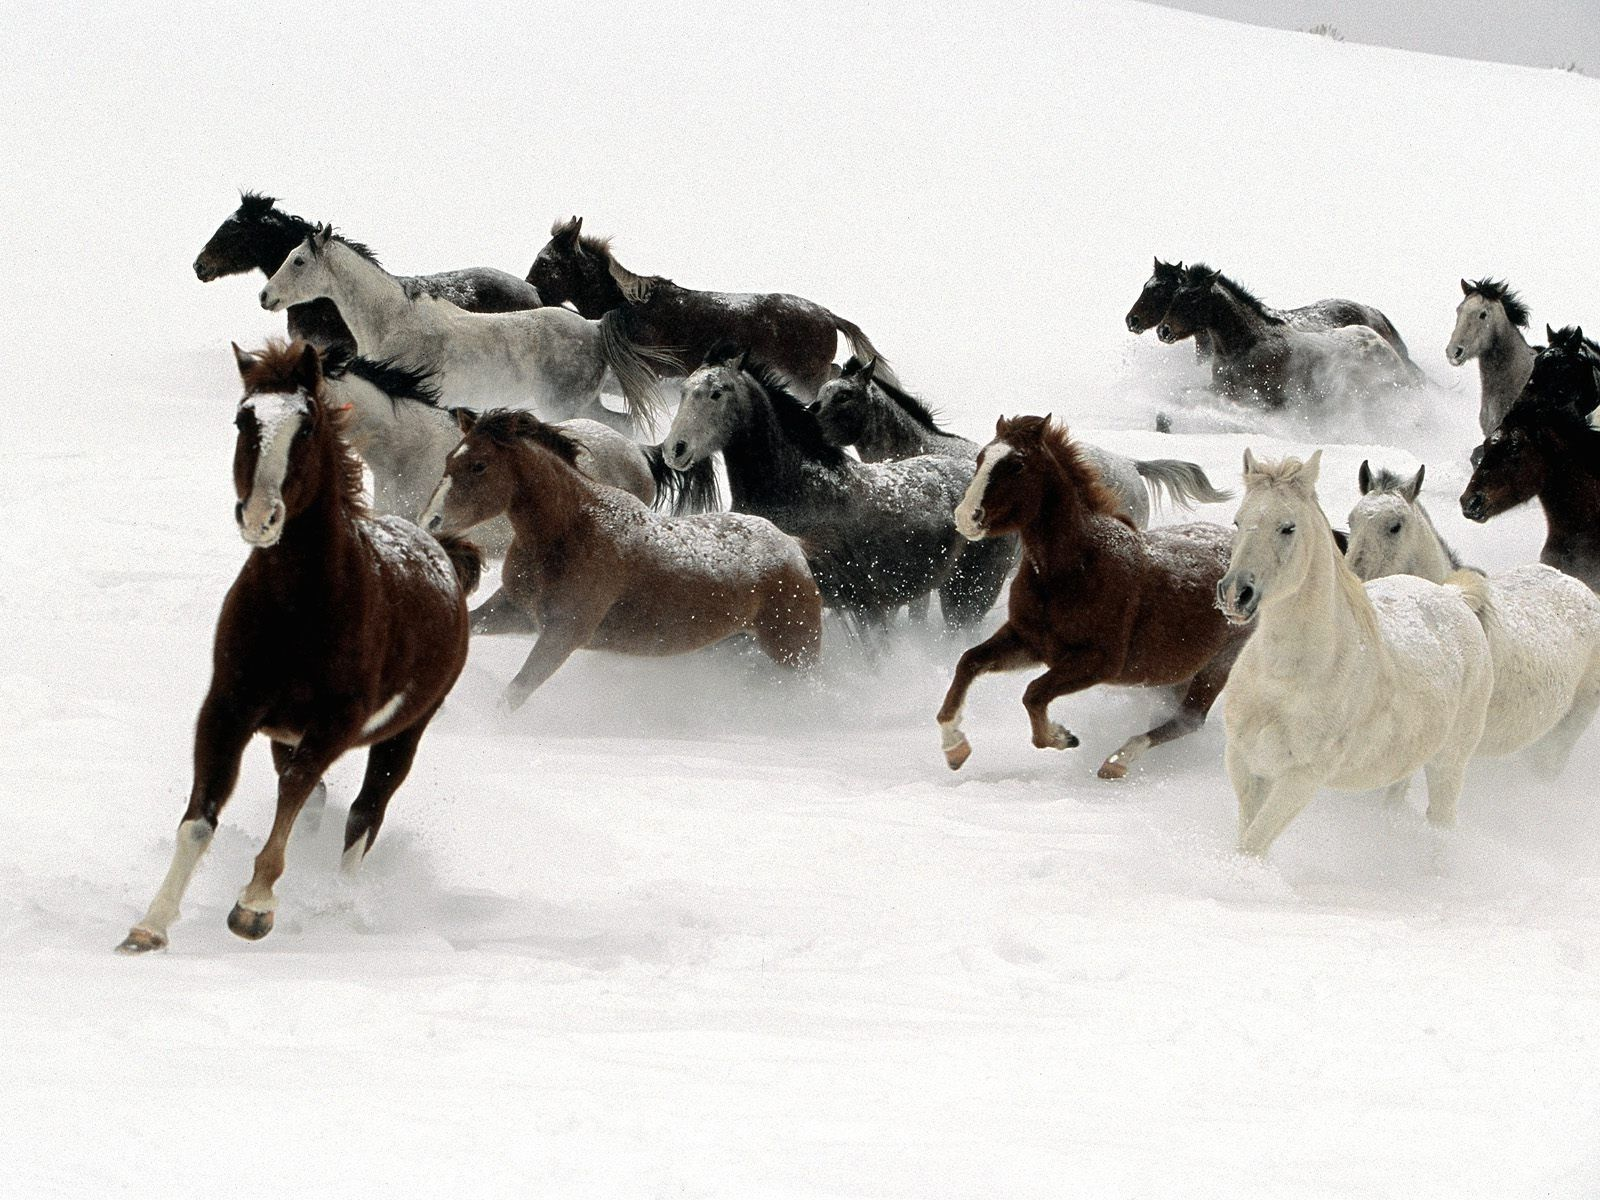 Top Wallpaper Horse Winter - dac391b5dcb491233b042cb61702300f  Graphic_394274.jpg